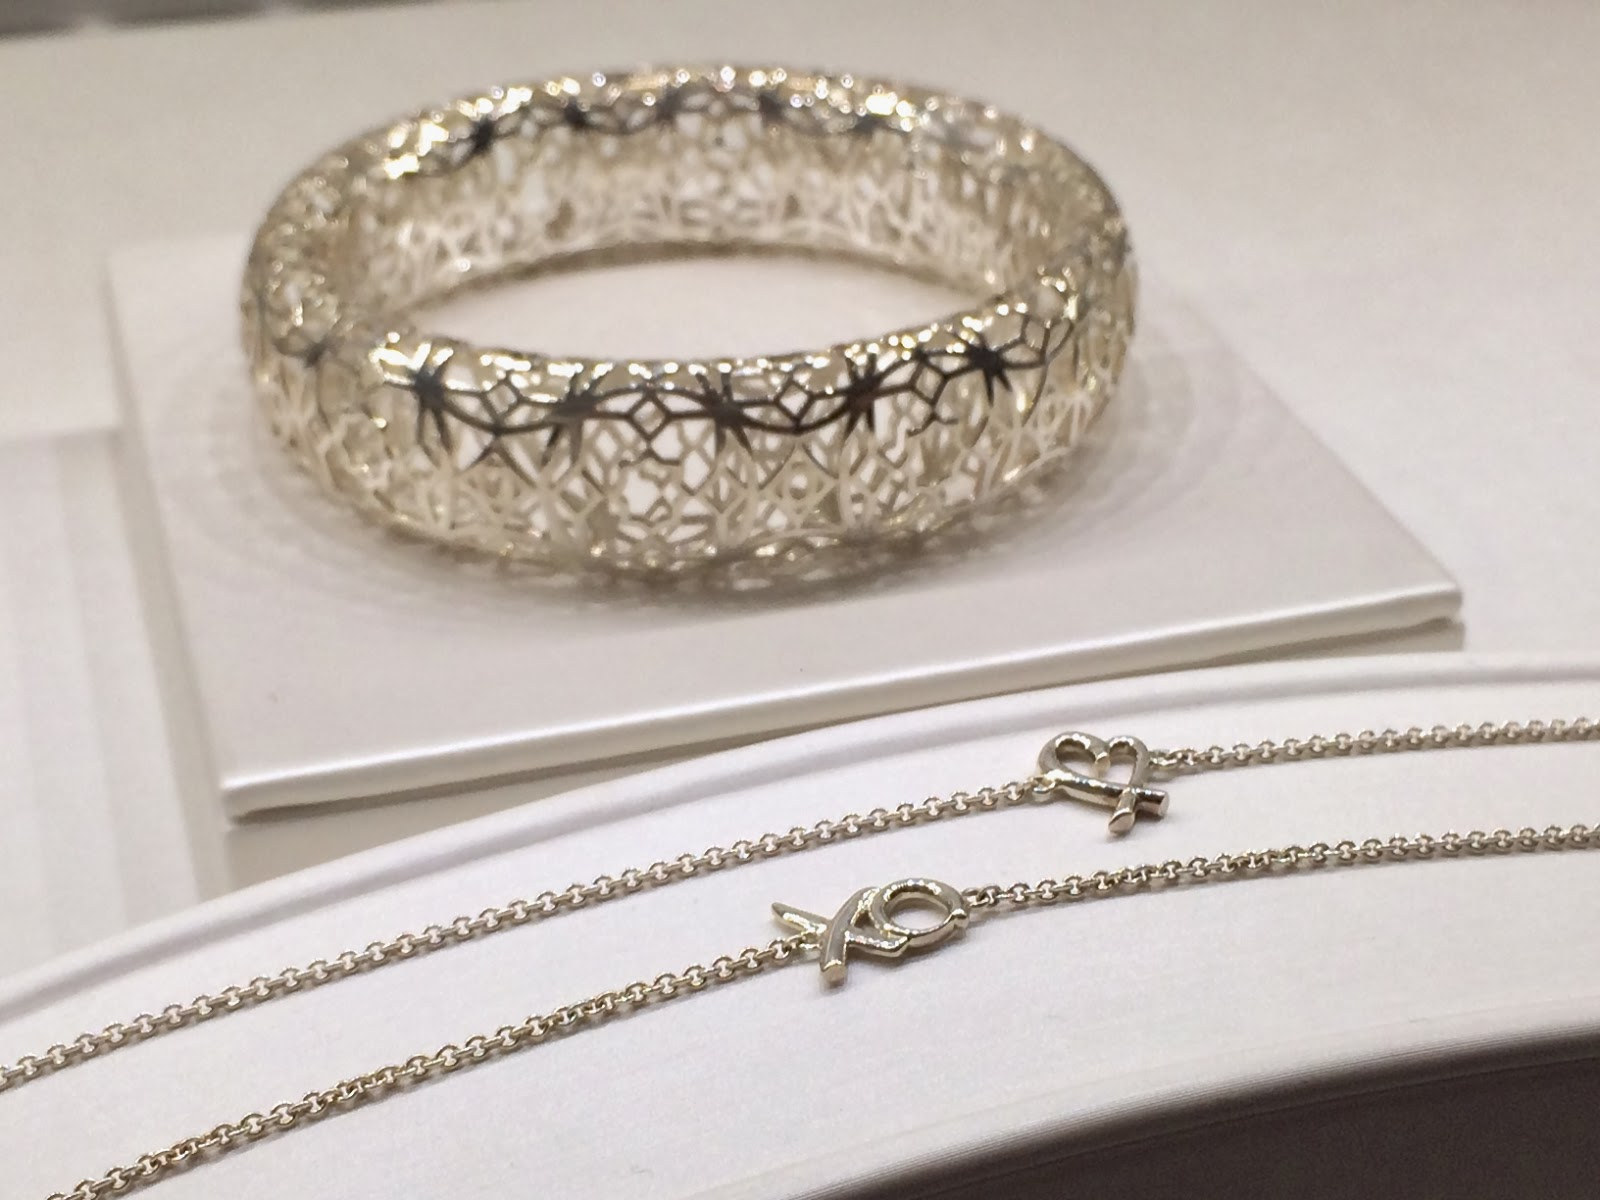 New Cherished Pieces At Tiffany S Pearls Amp Caramel